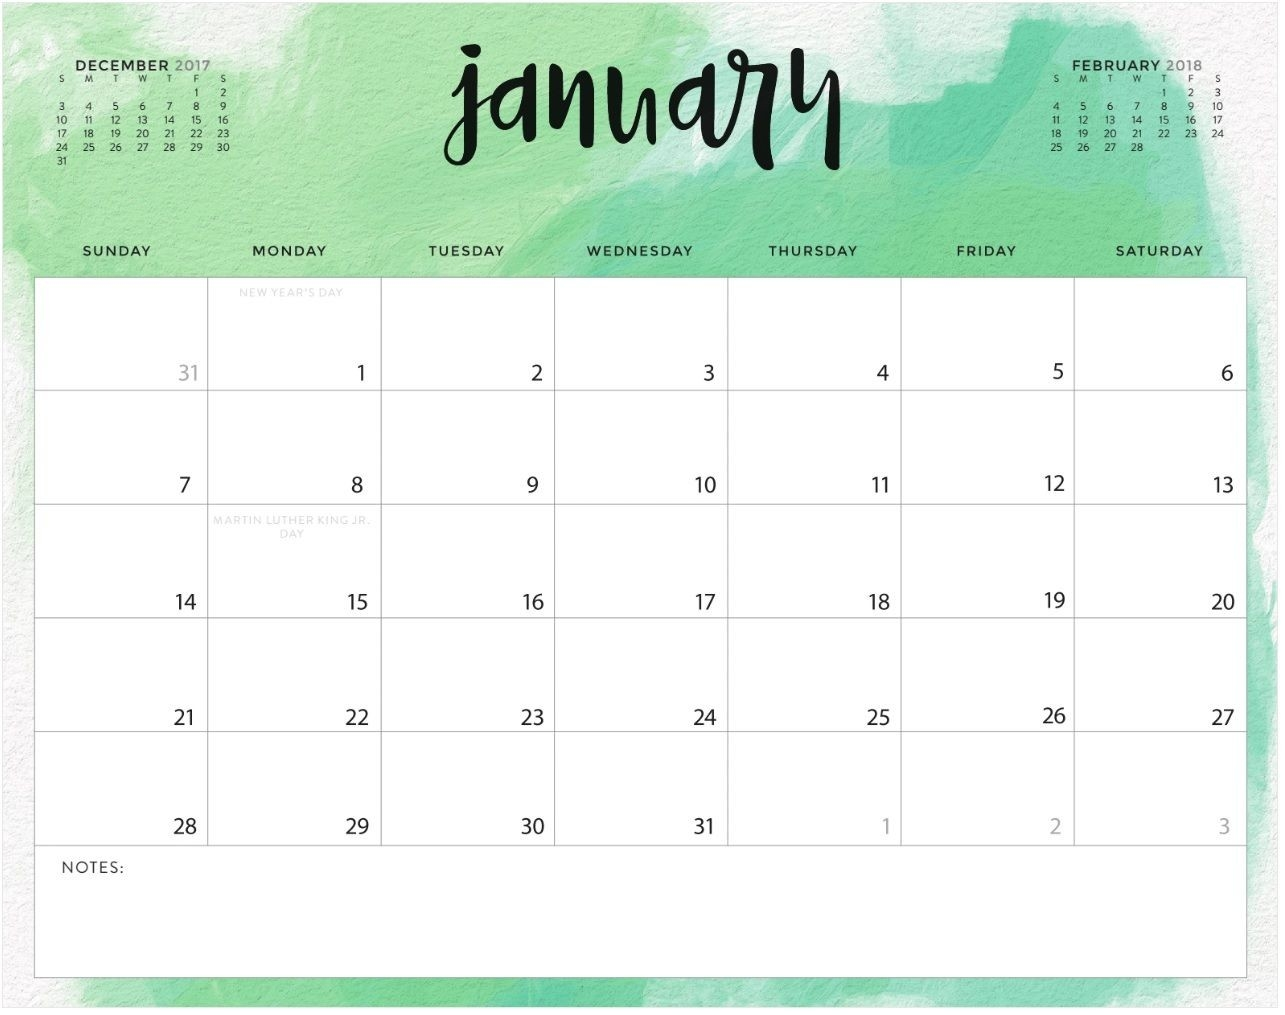 Color Pattern January 2018 Printable Calendar | Maxcalendars-Free Monthly Holiday Themed Calendar Printable 2020-2020